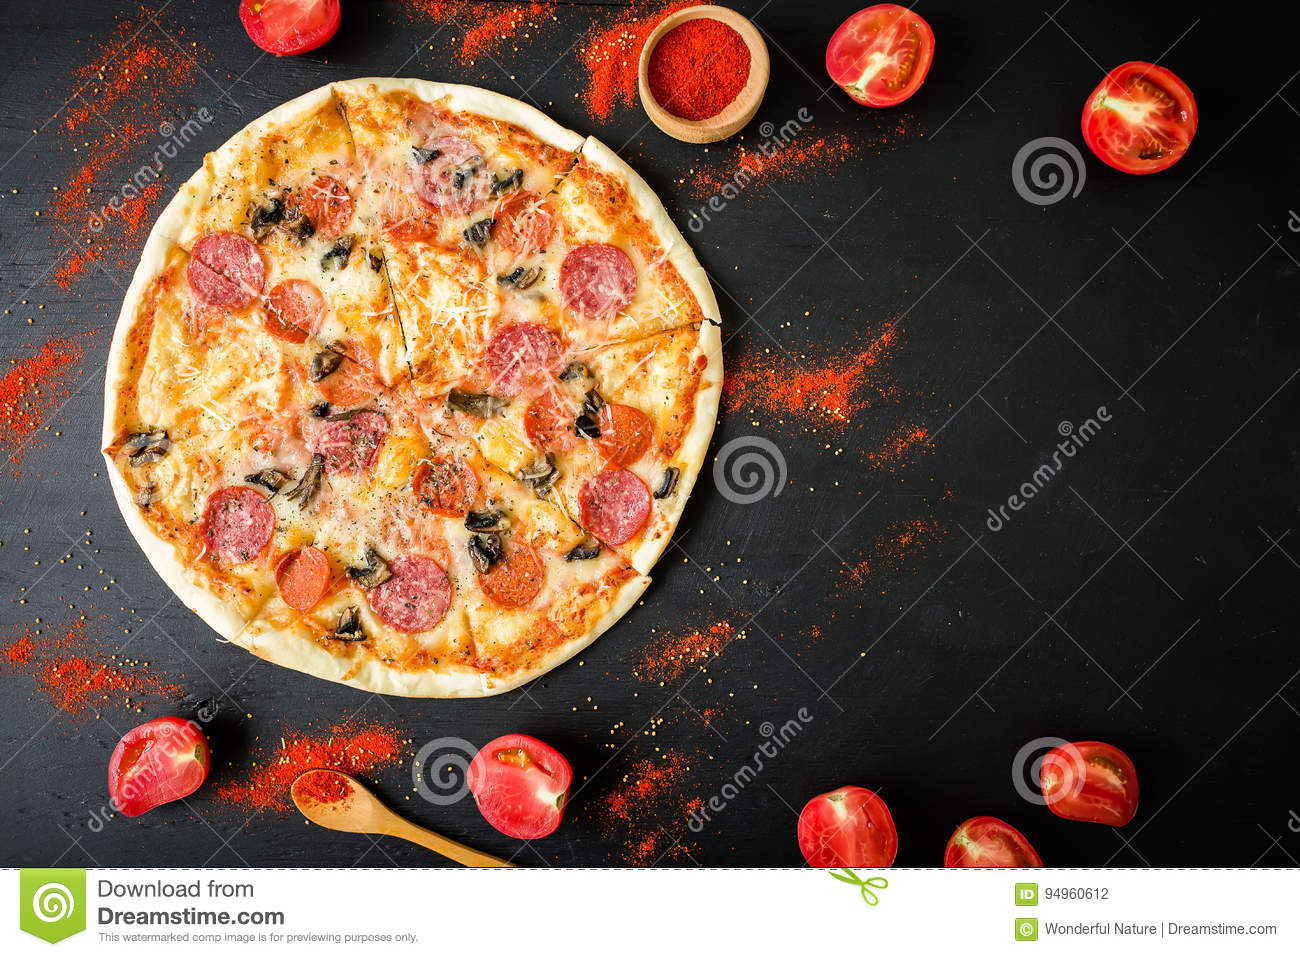 Frame of tasty Italian pizza with ingredients and spices on dark background. Flat lay, top view.